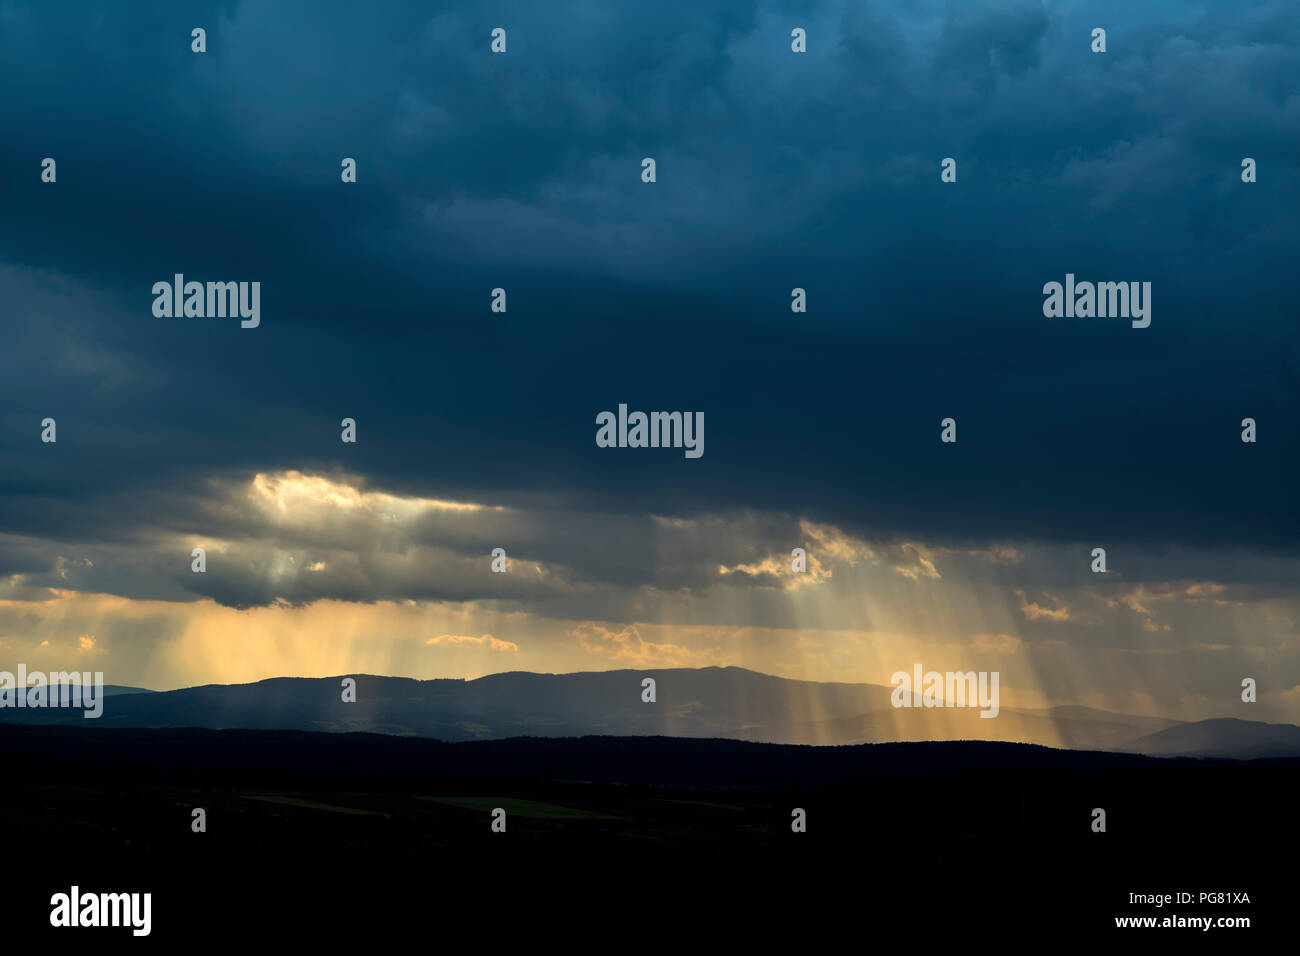 Germany, dark and dramatic cloudy mood during thunderstorm - Stock Image